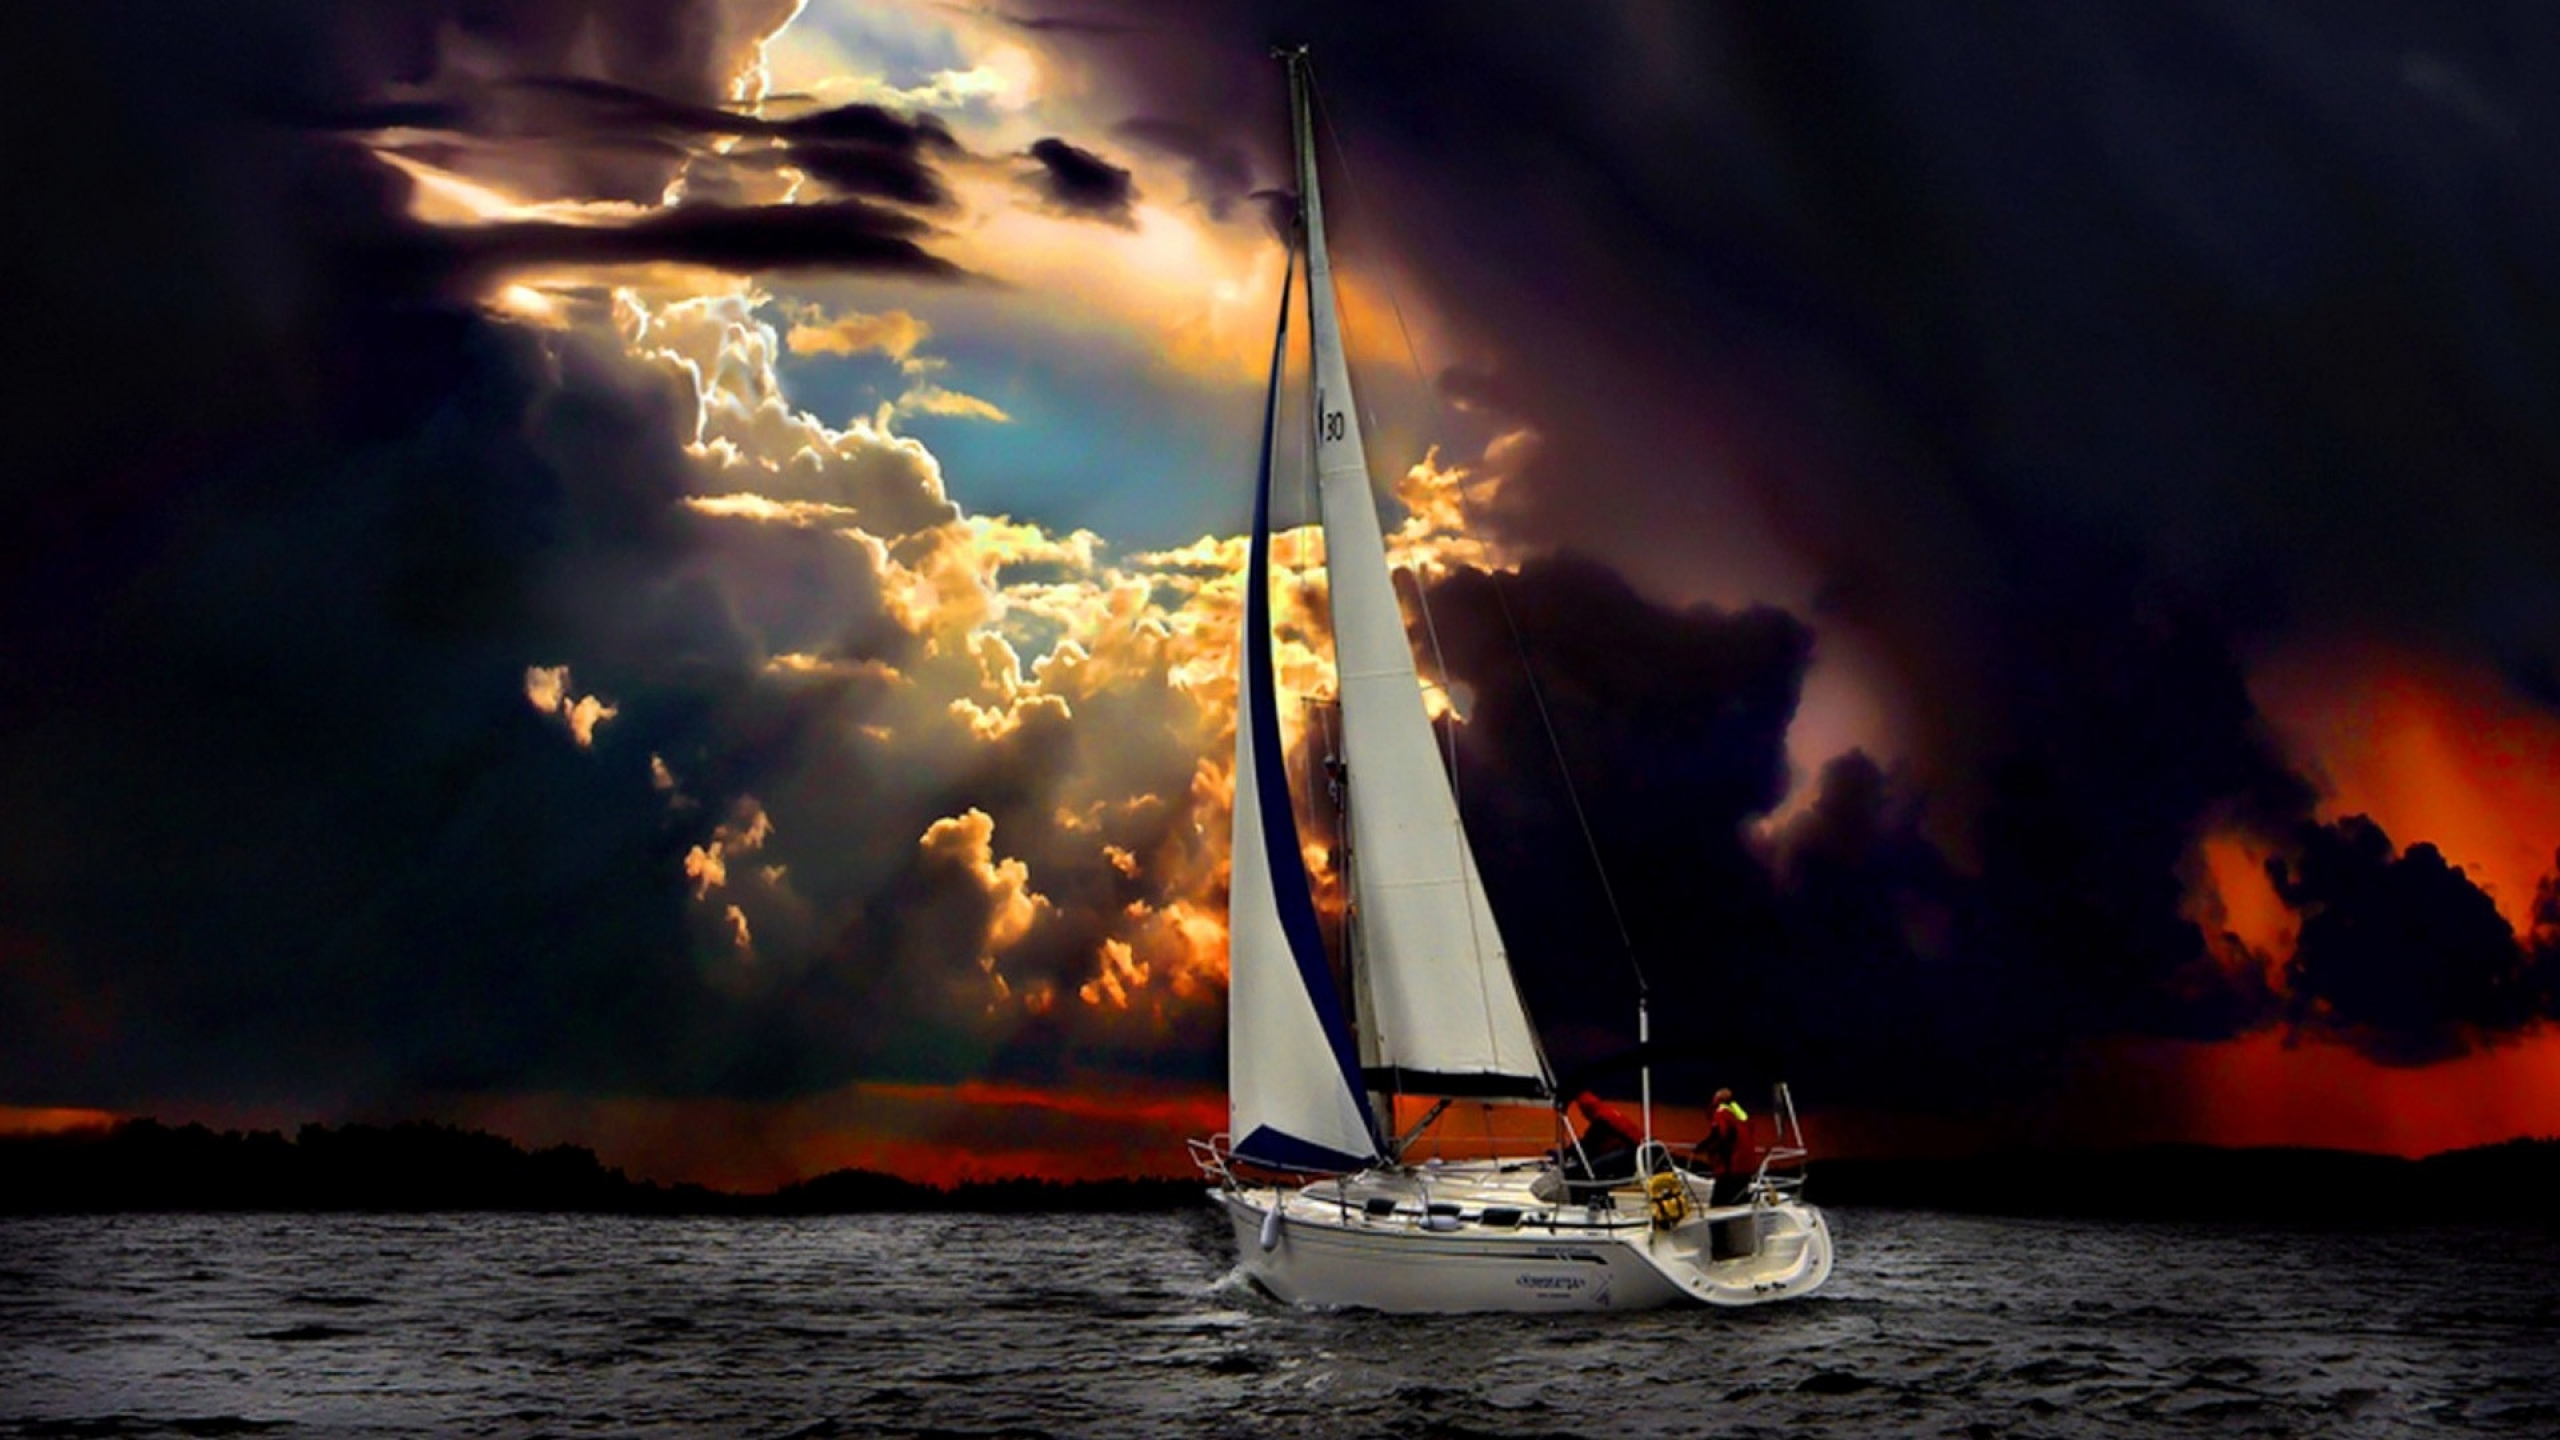 Vehicles - Sailboat Wallpaper